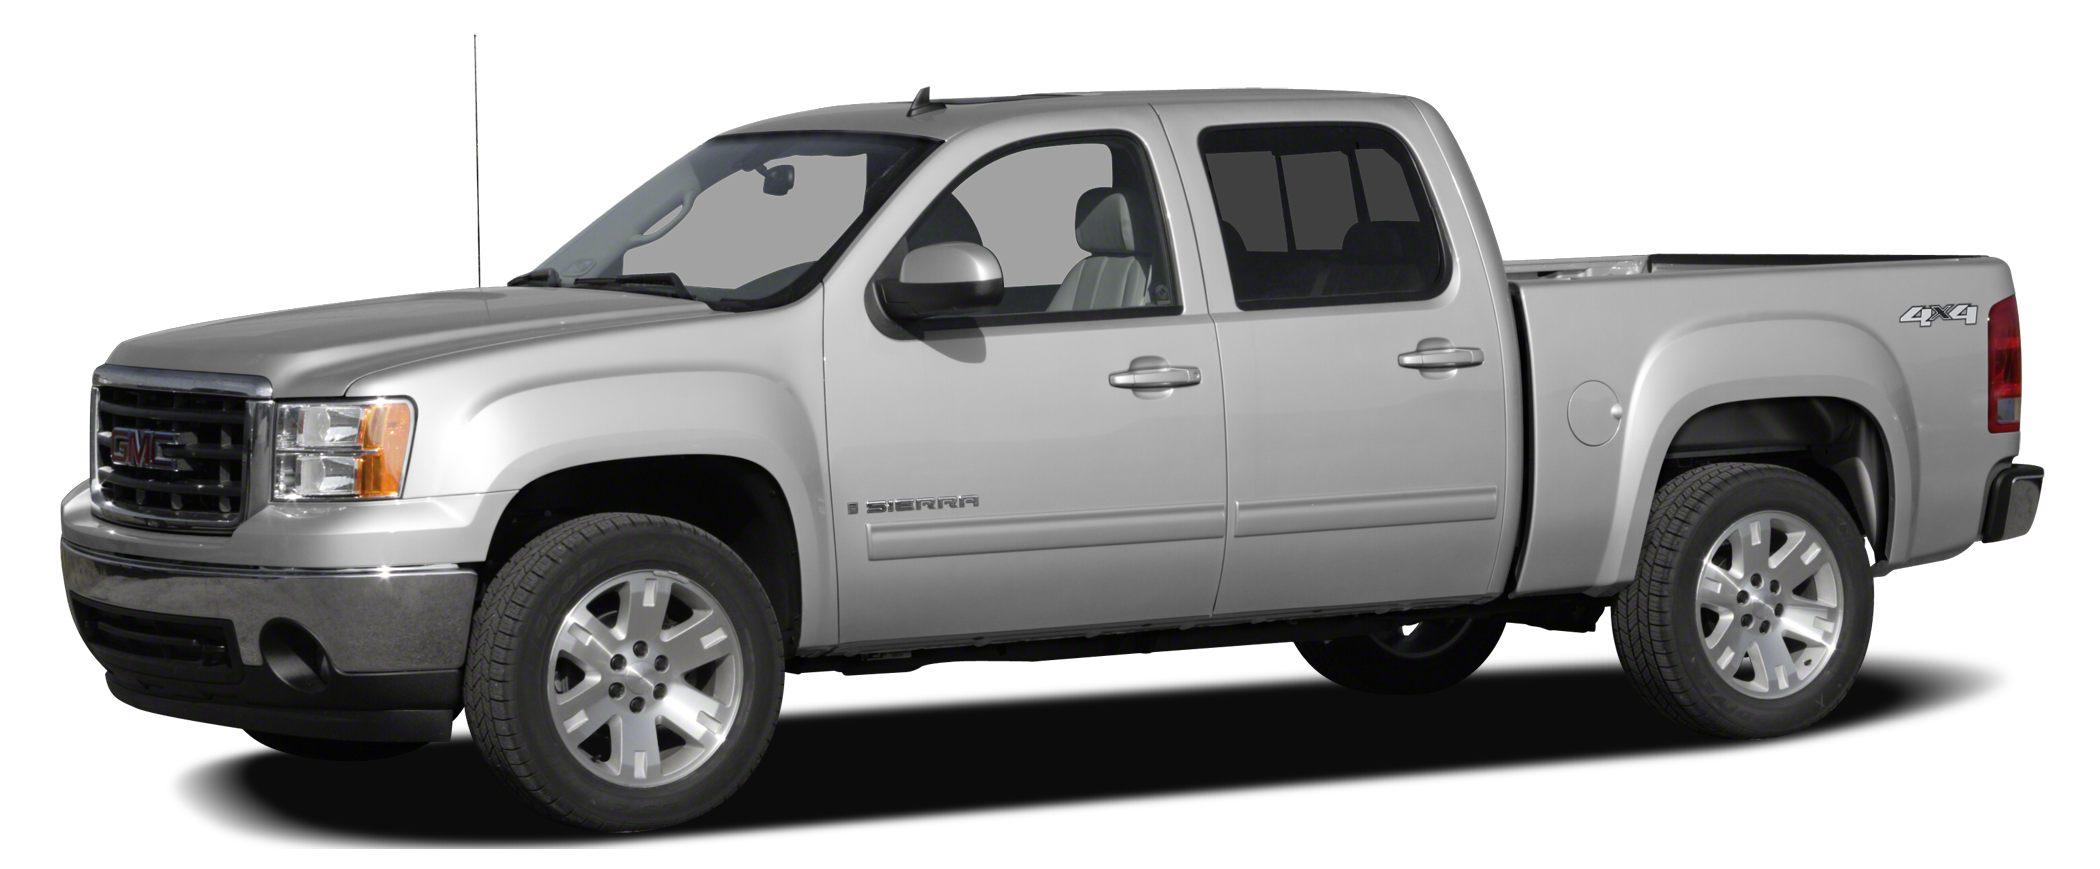 2011 GMC Sierra 1500 SLT JUST REPRICED FROM 28900 PRICED TO MOVE 900 below Kelley Blue Book C